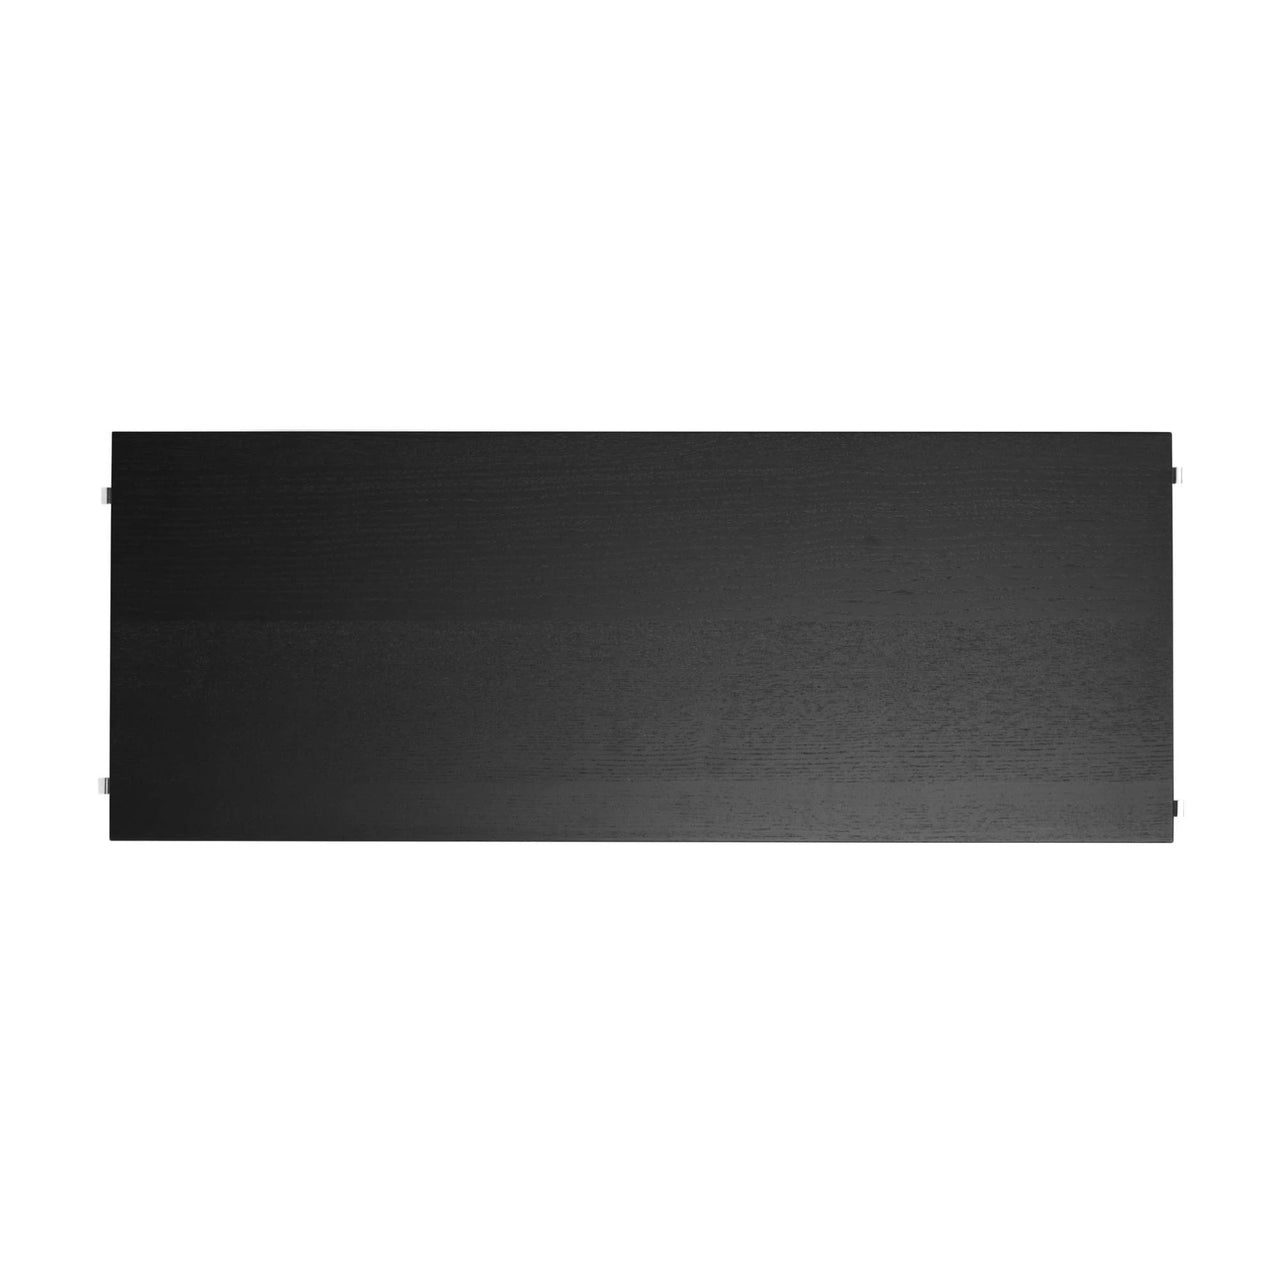 String Shelves (3-Pack): 78 x 30 cm + Black Stained Ash